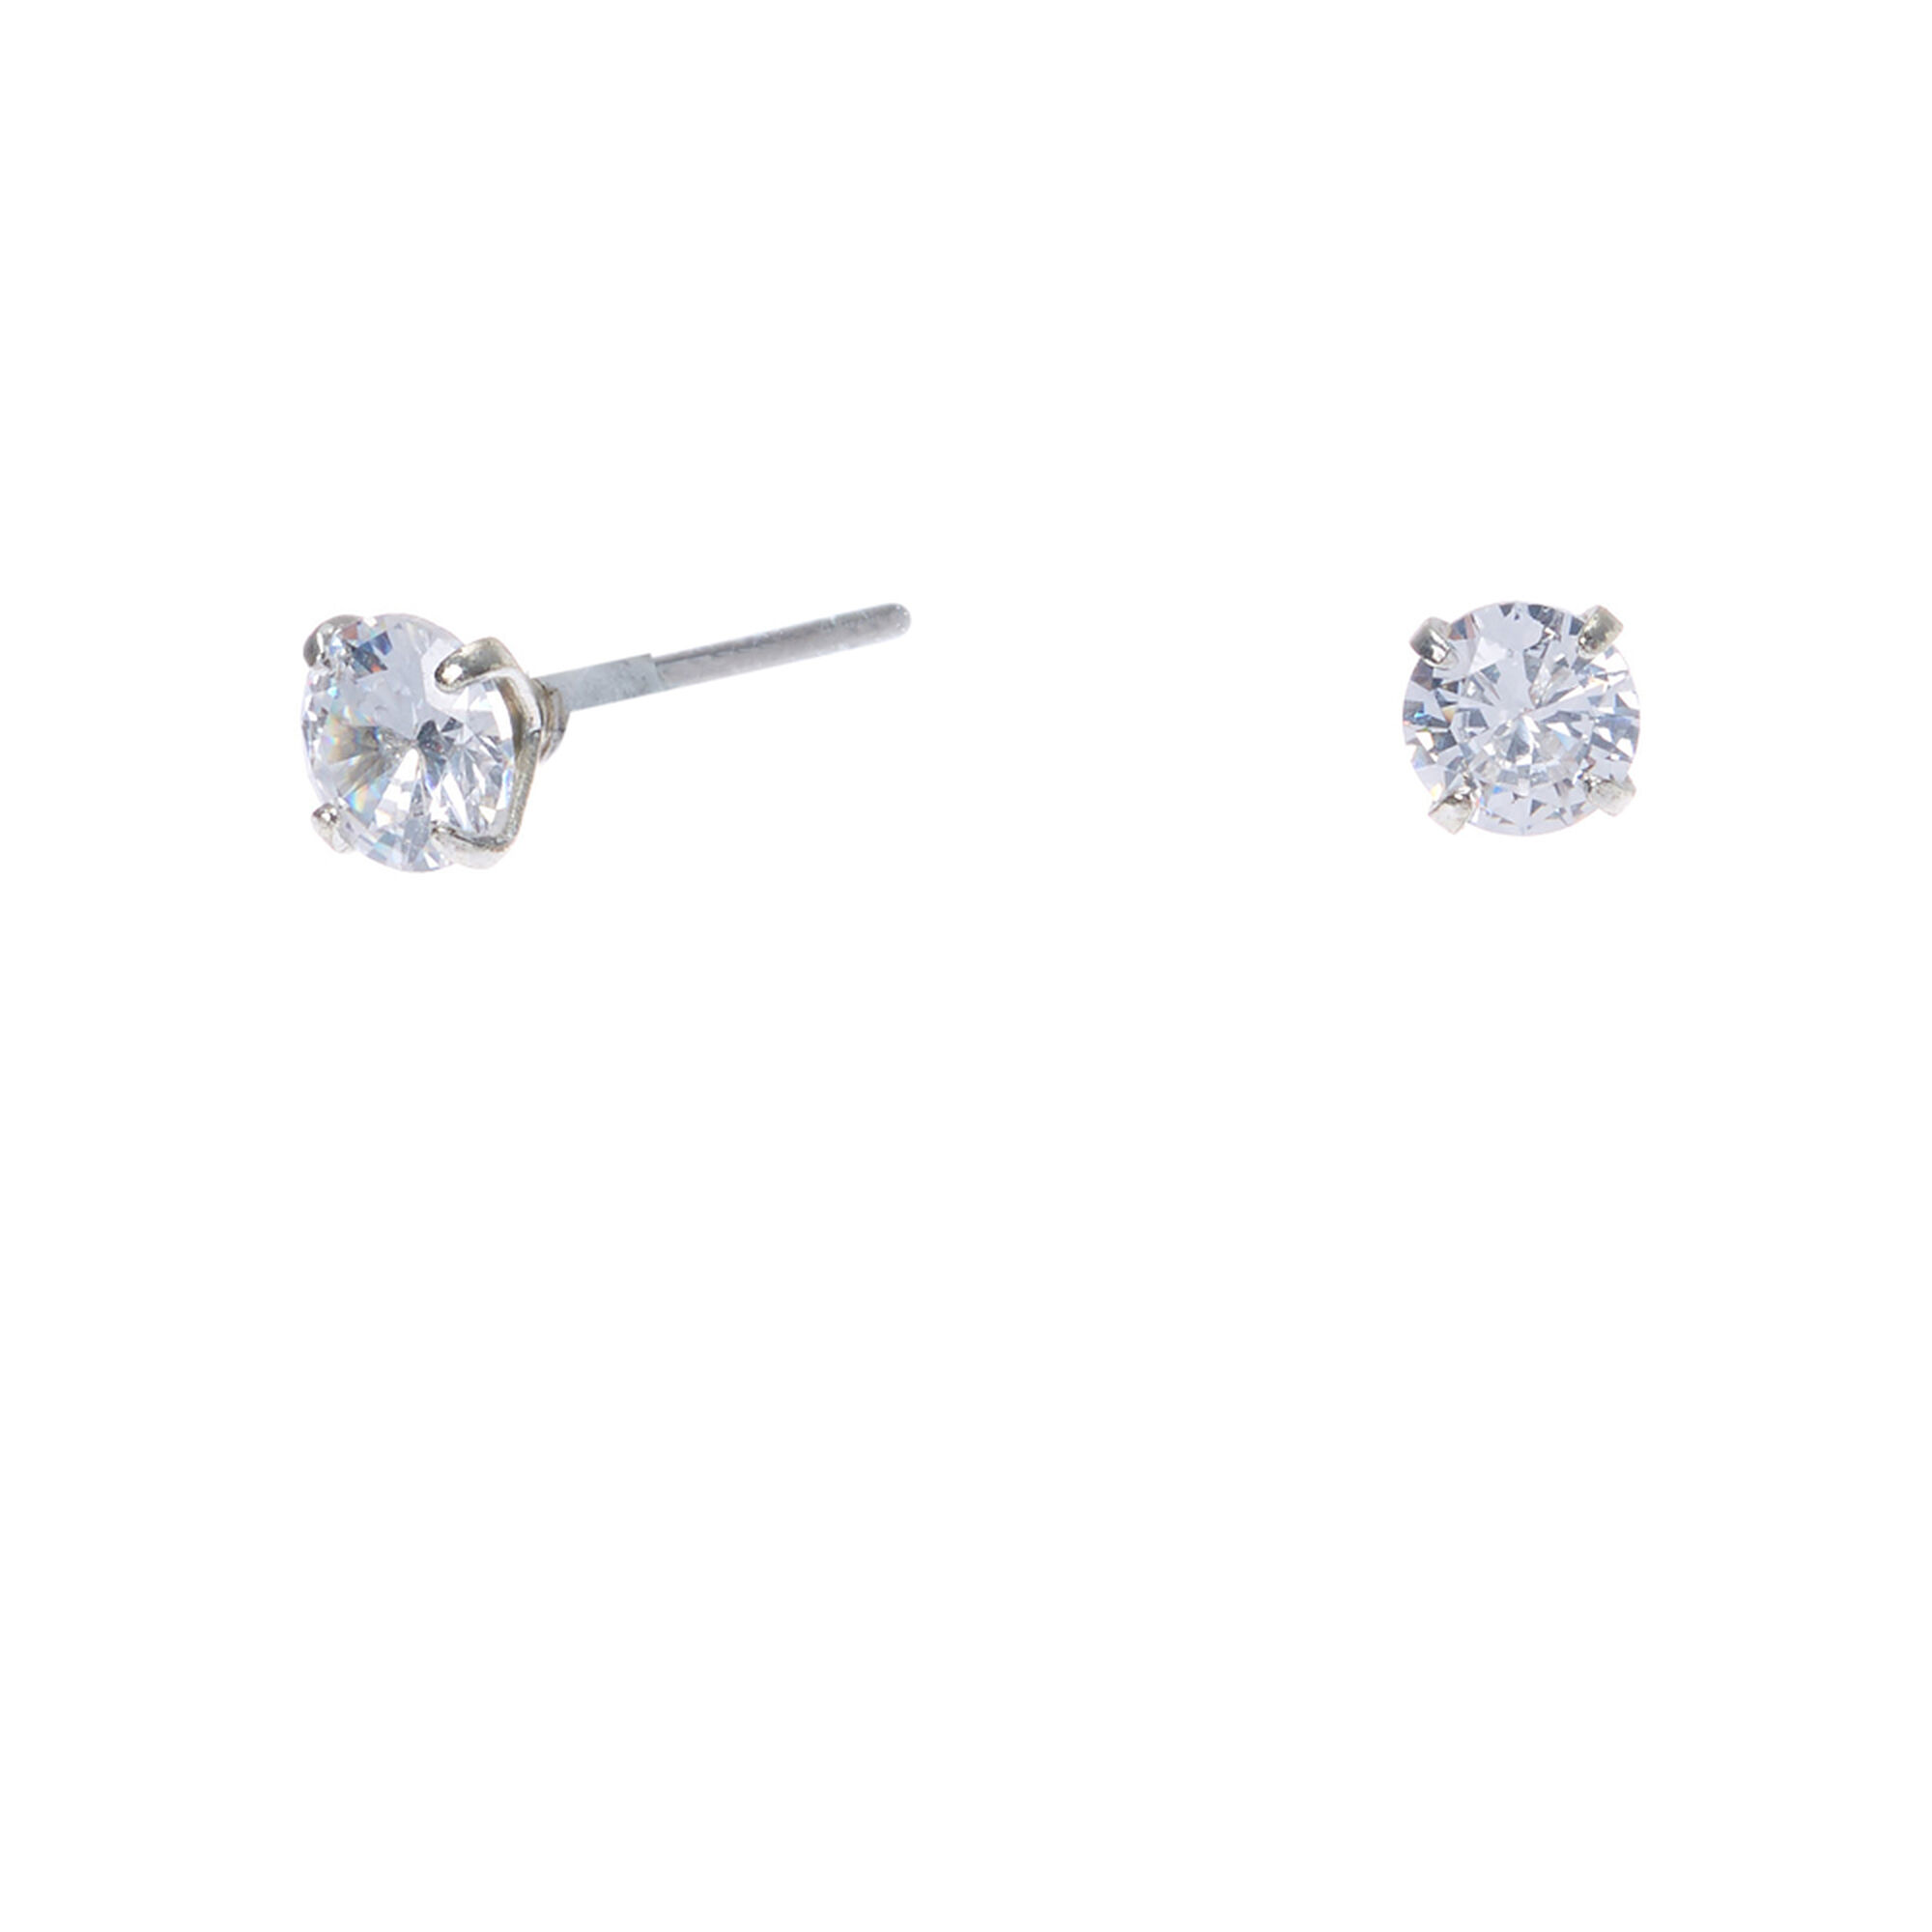 Silver Cubic Zirconia Round Stud Earrings - 4MM